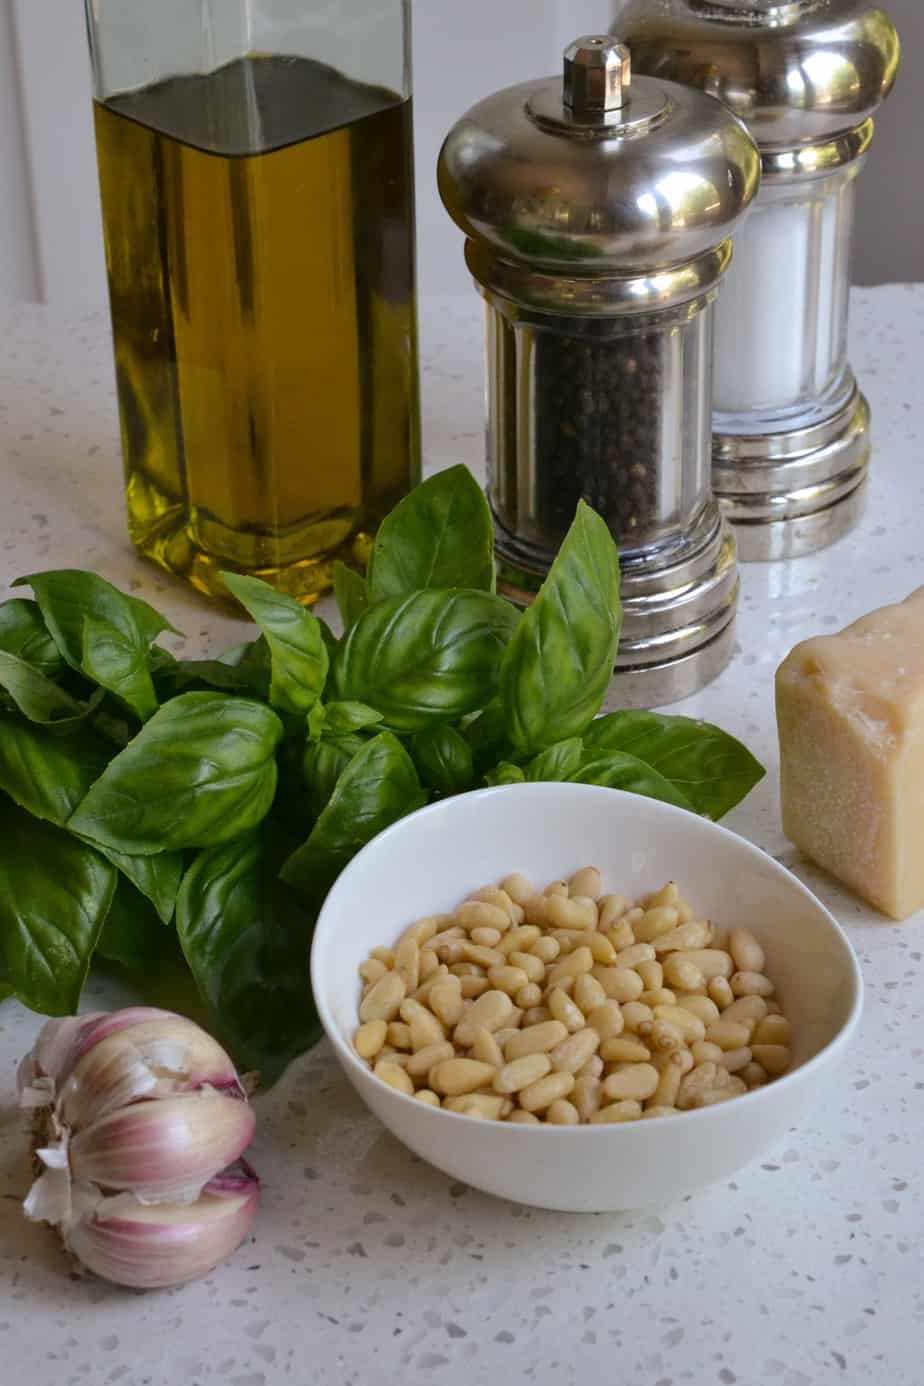 Pesto sauce is made with pine nuts, basil, garlic, Parmesan Cheese, and olive oil.